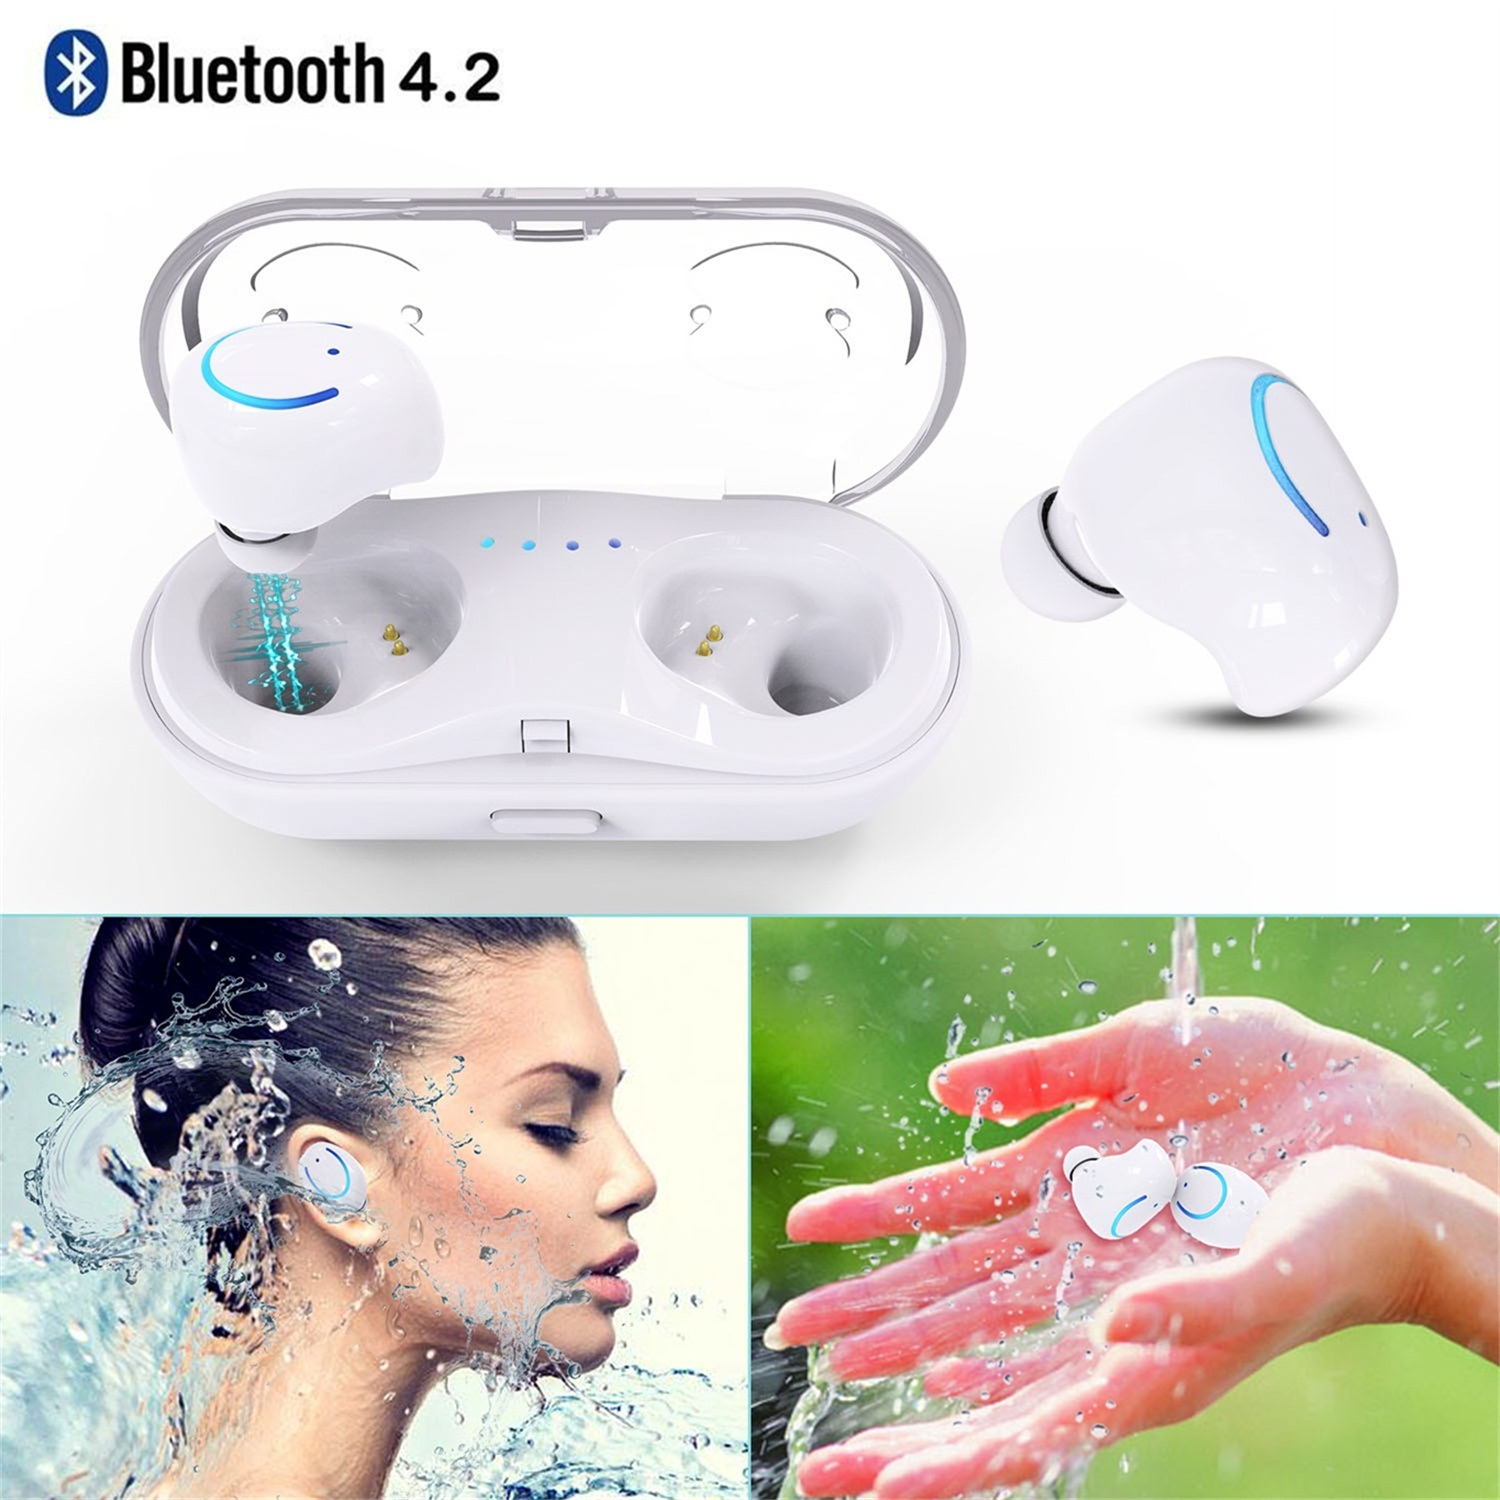 AGPtek Mini True Wireless Bluetooth 4.2 Stereo Headphone Earbuds In-Ear Earbud Portable Charging